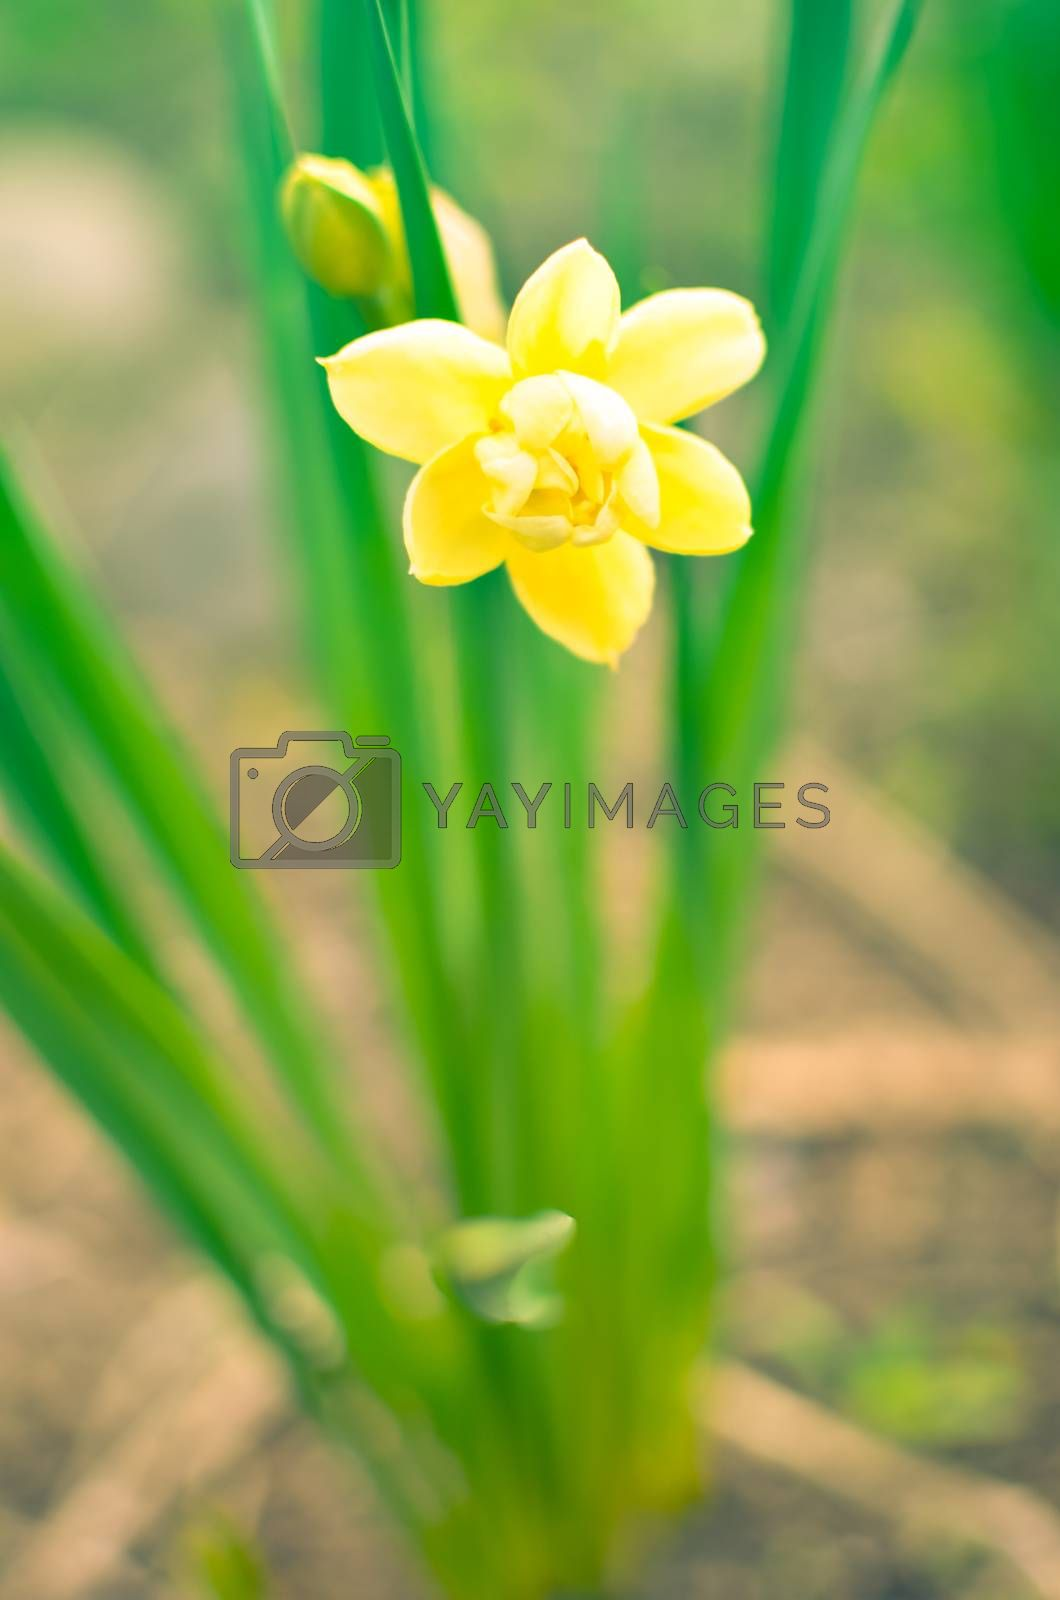 Yellow daffodil,narcissus flower in spring closeup view